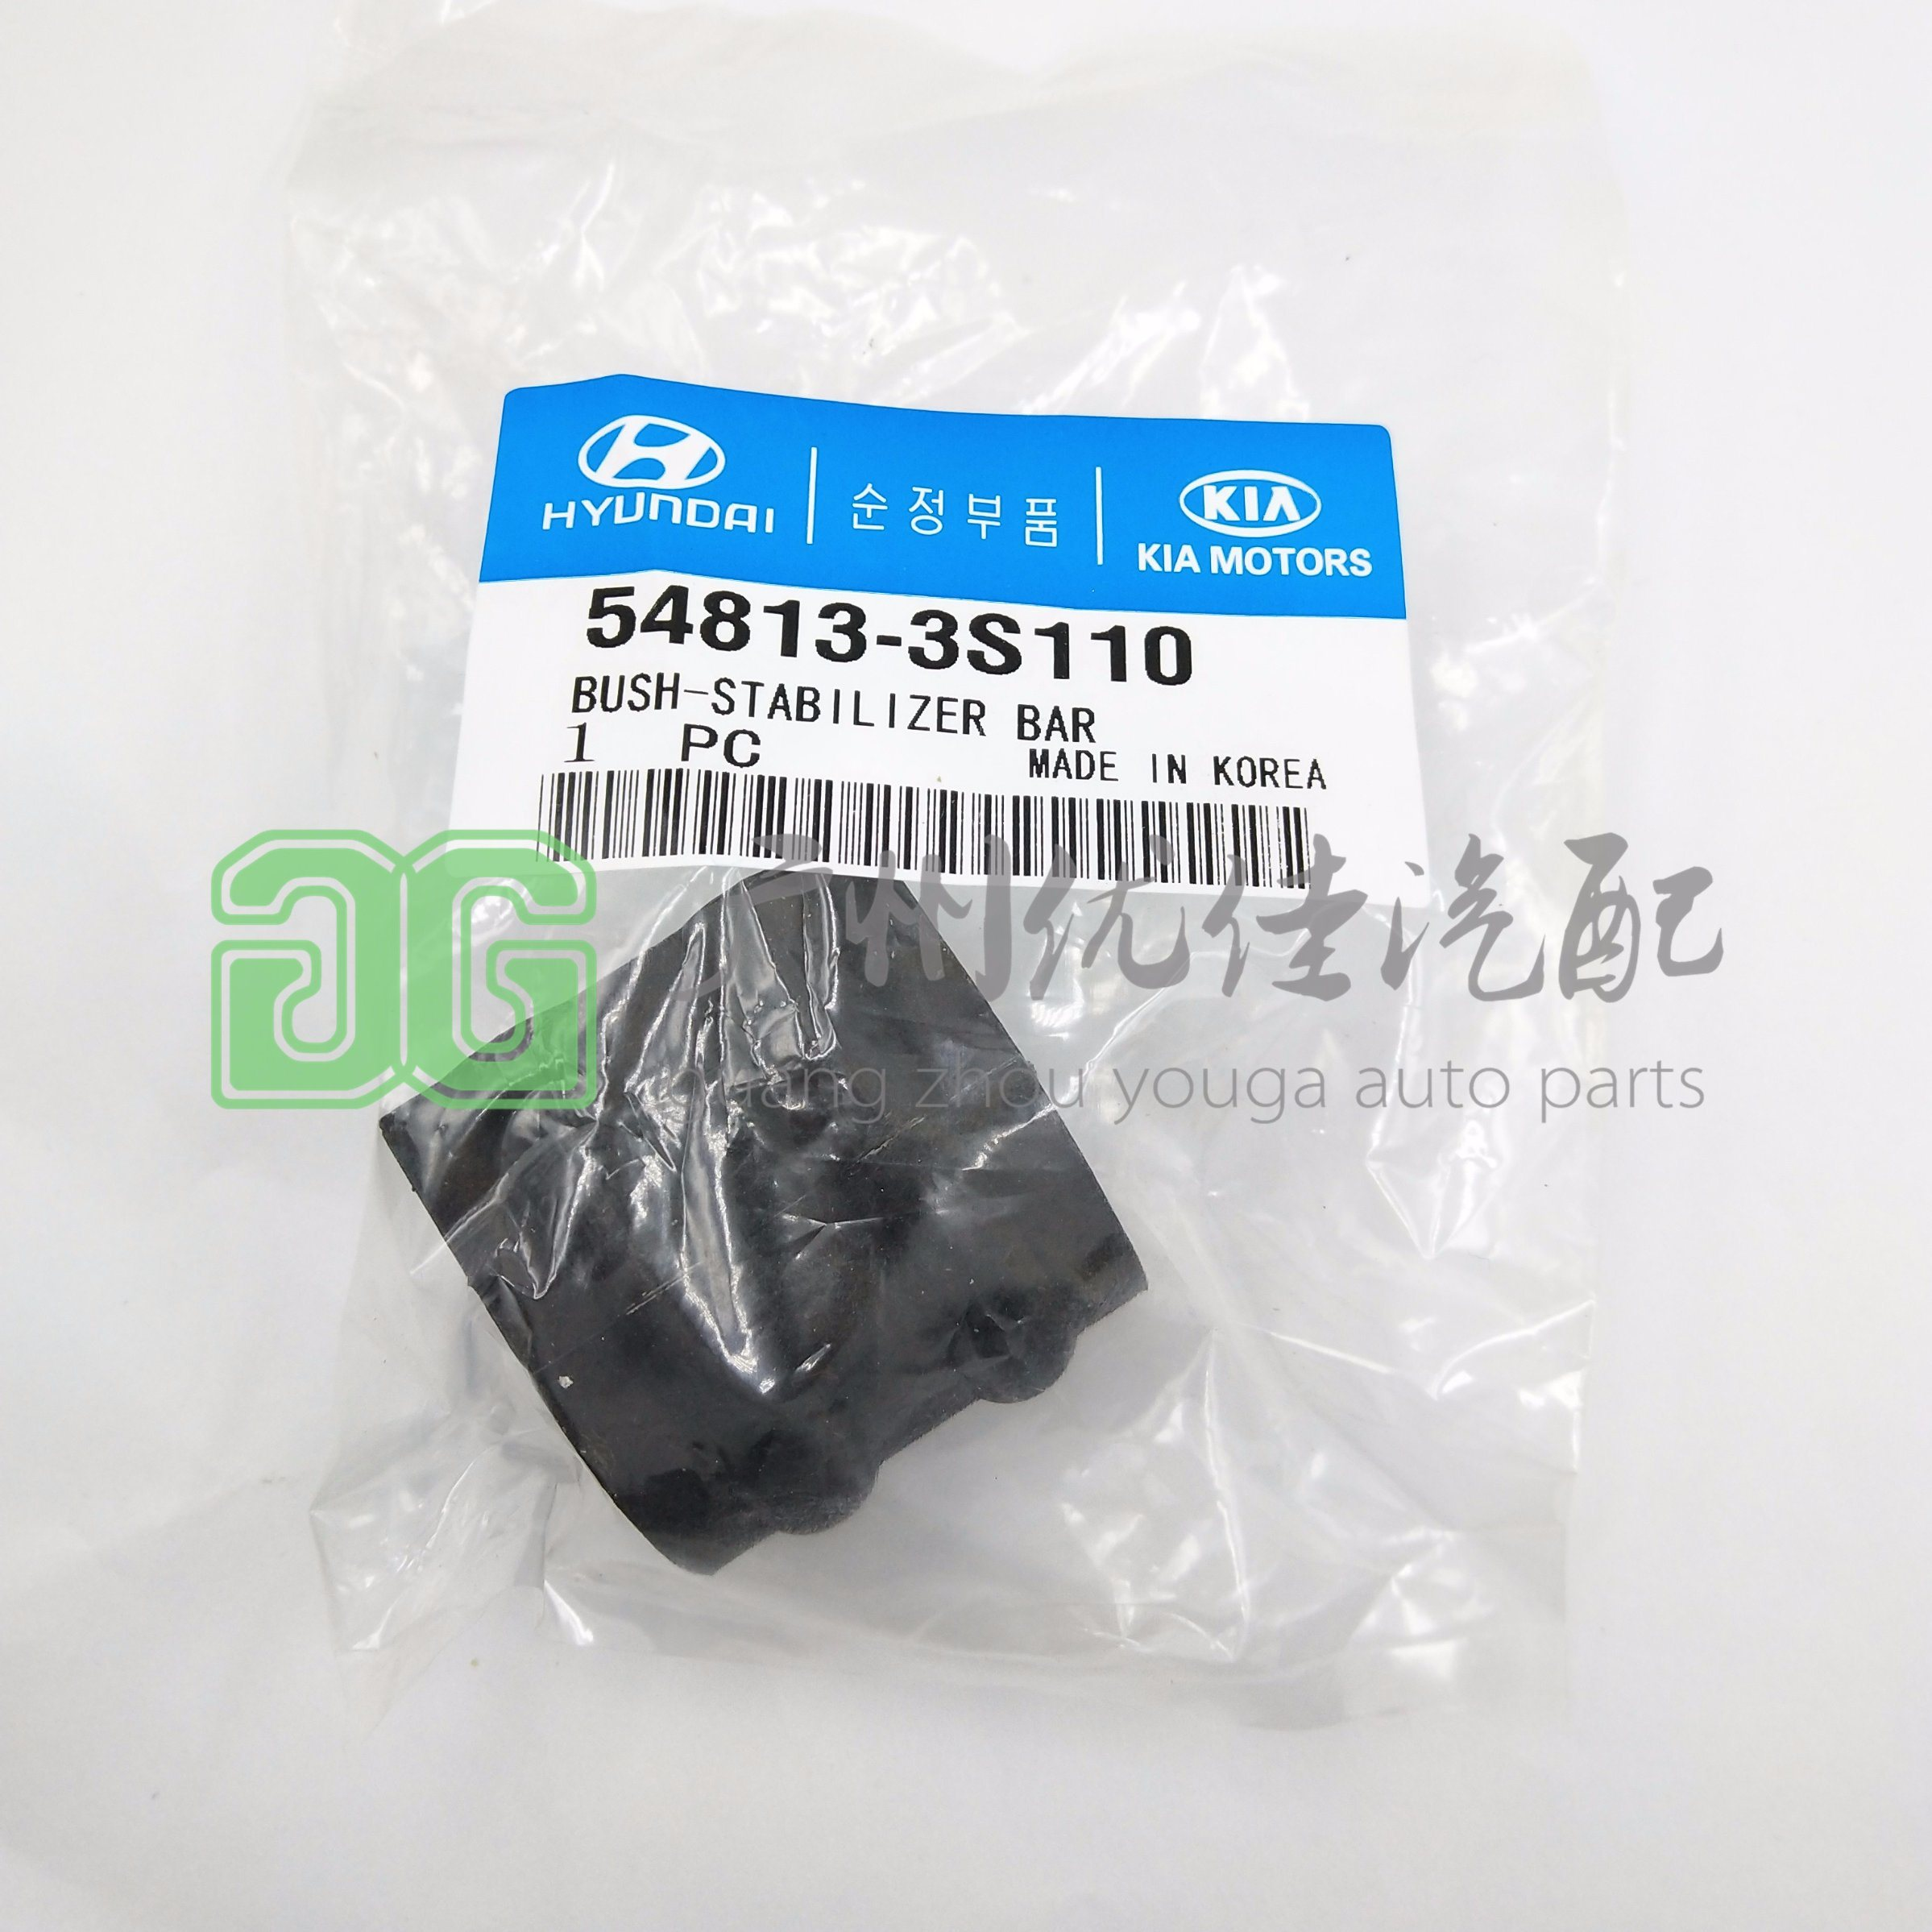 [Hot Item] Supply Stabilizer Bushing 54813-2t000/54813-2t000/54813-3s110/  54813-3s110, Direct by Manufacturer Korean Auto Suspension Parts